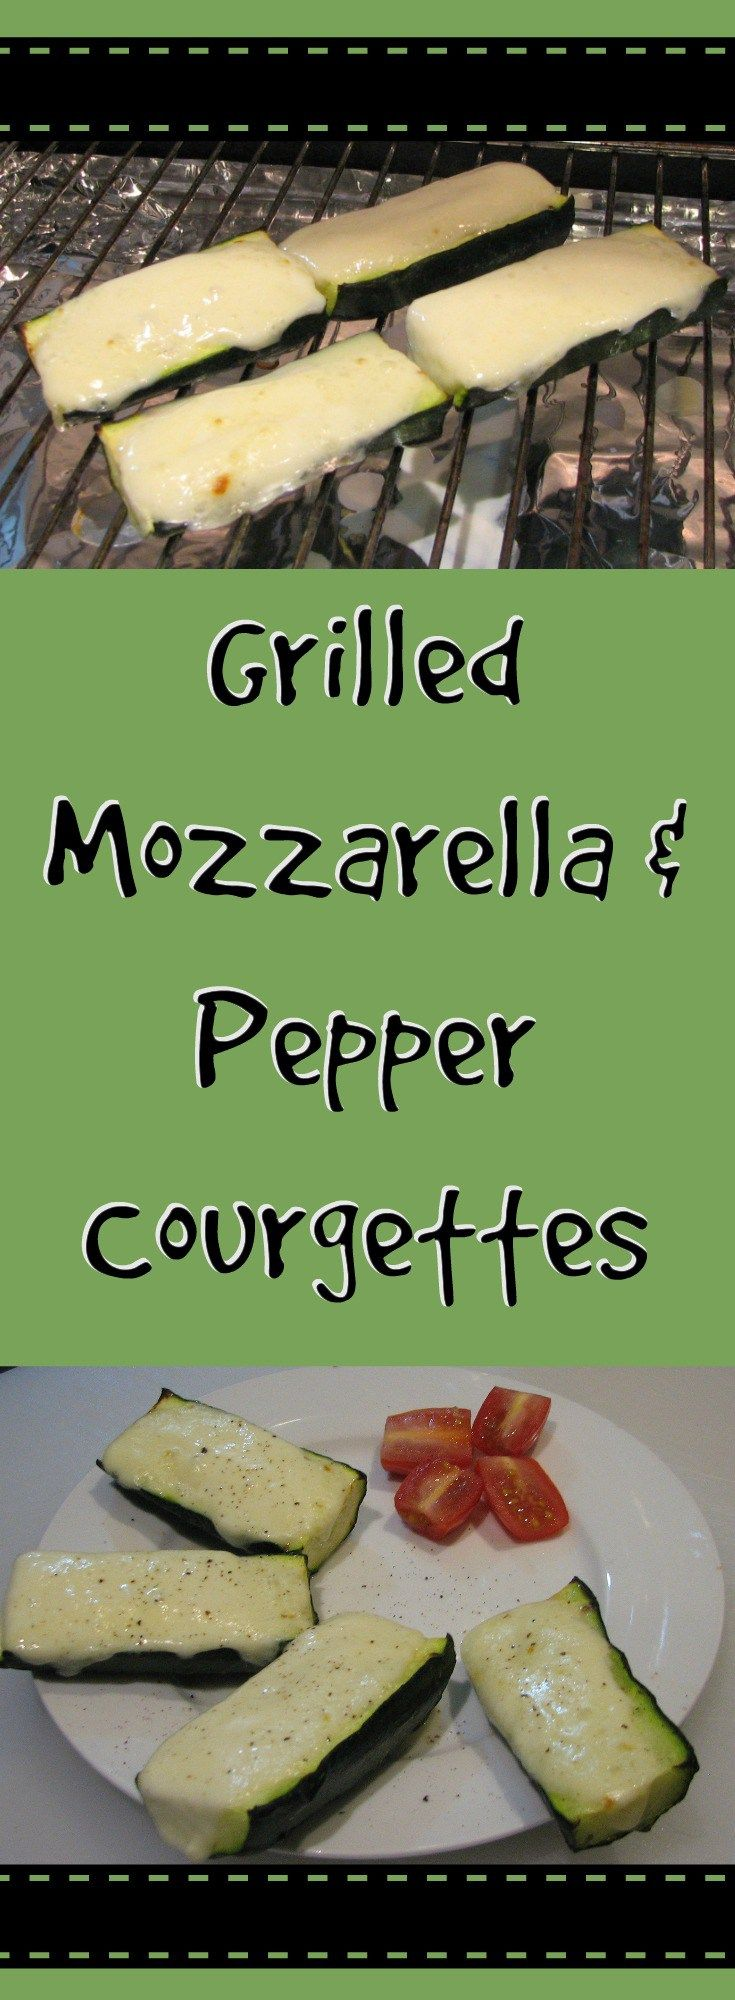 Grilled Mozzarella & Pepper Courgettes, gluten free tasty snack and ready in under 10 minutes (including prep) - great for parties too!